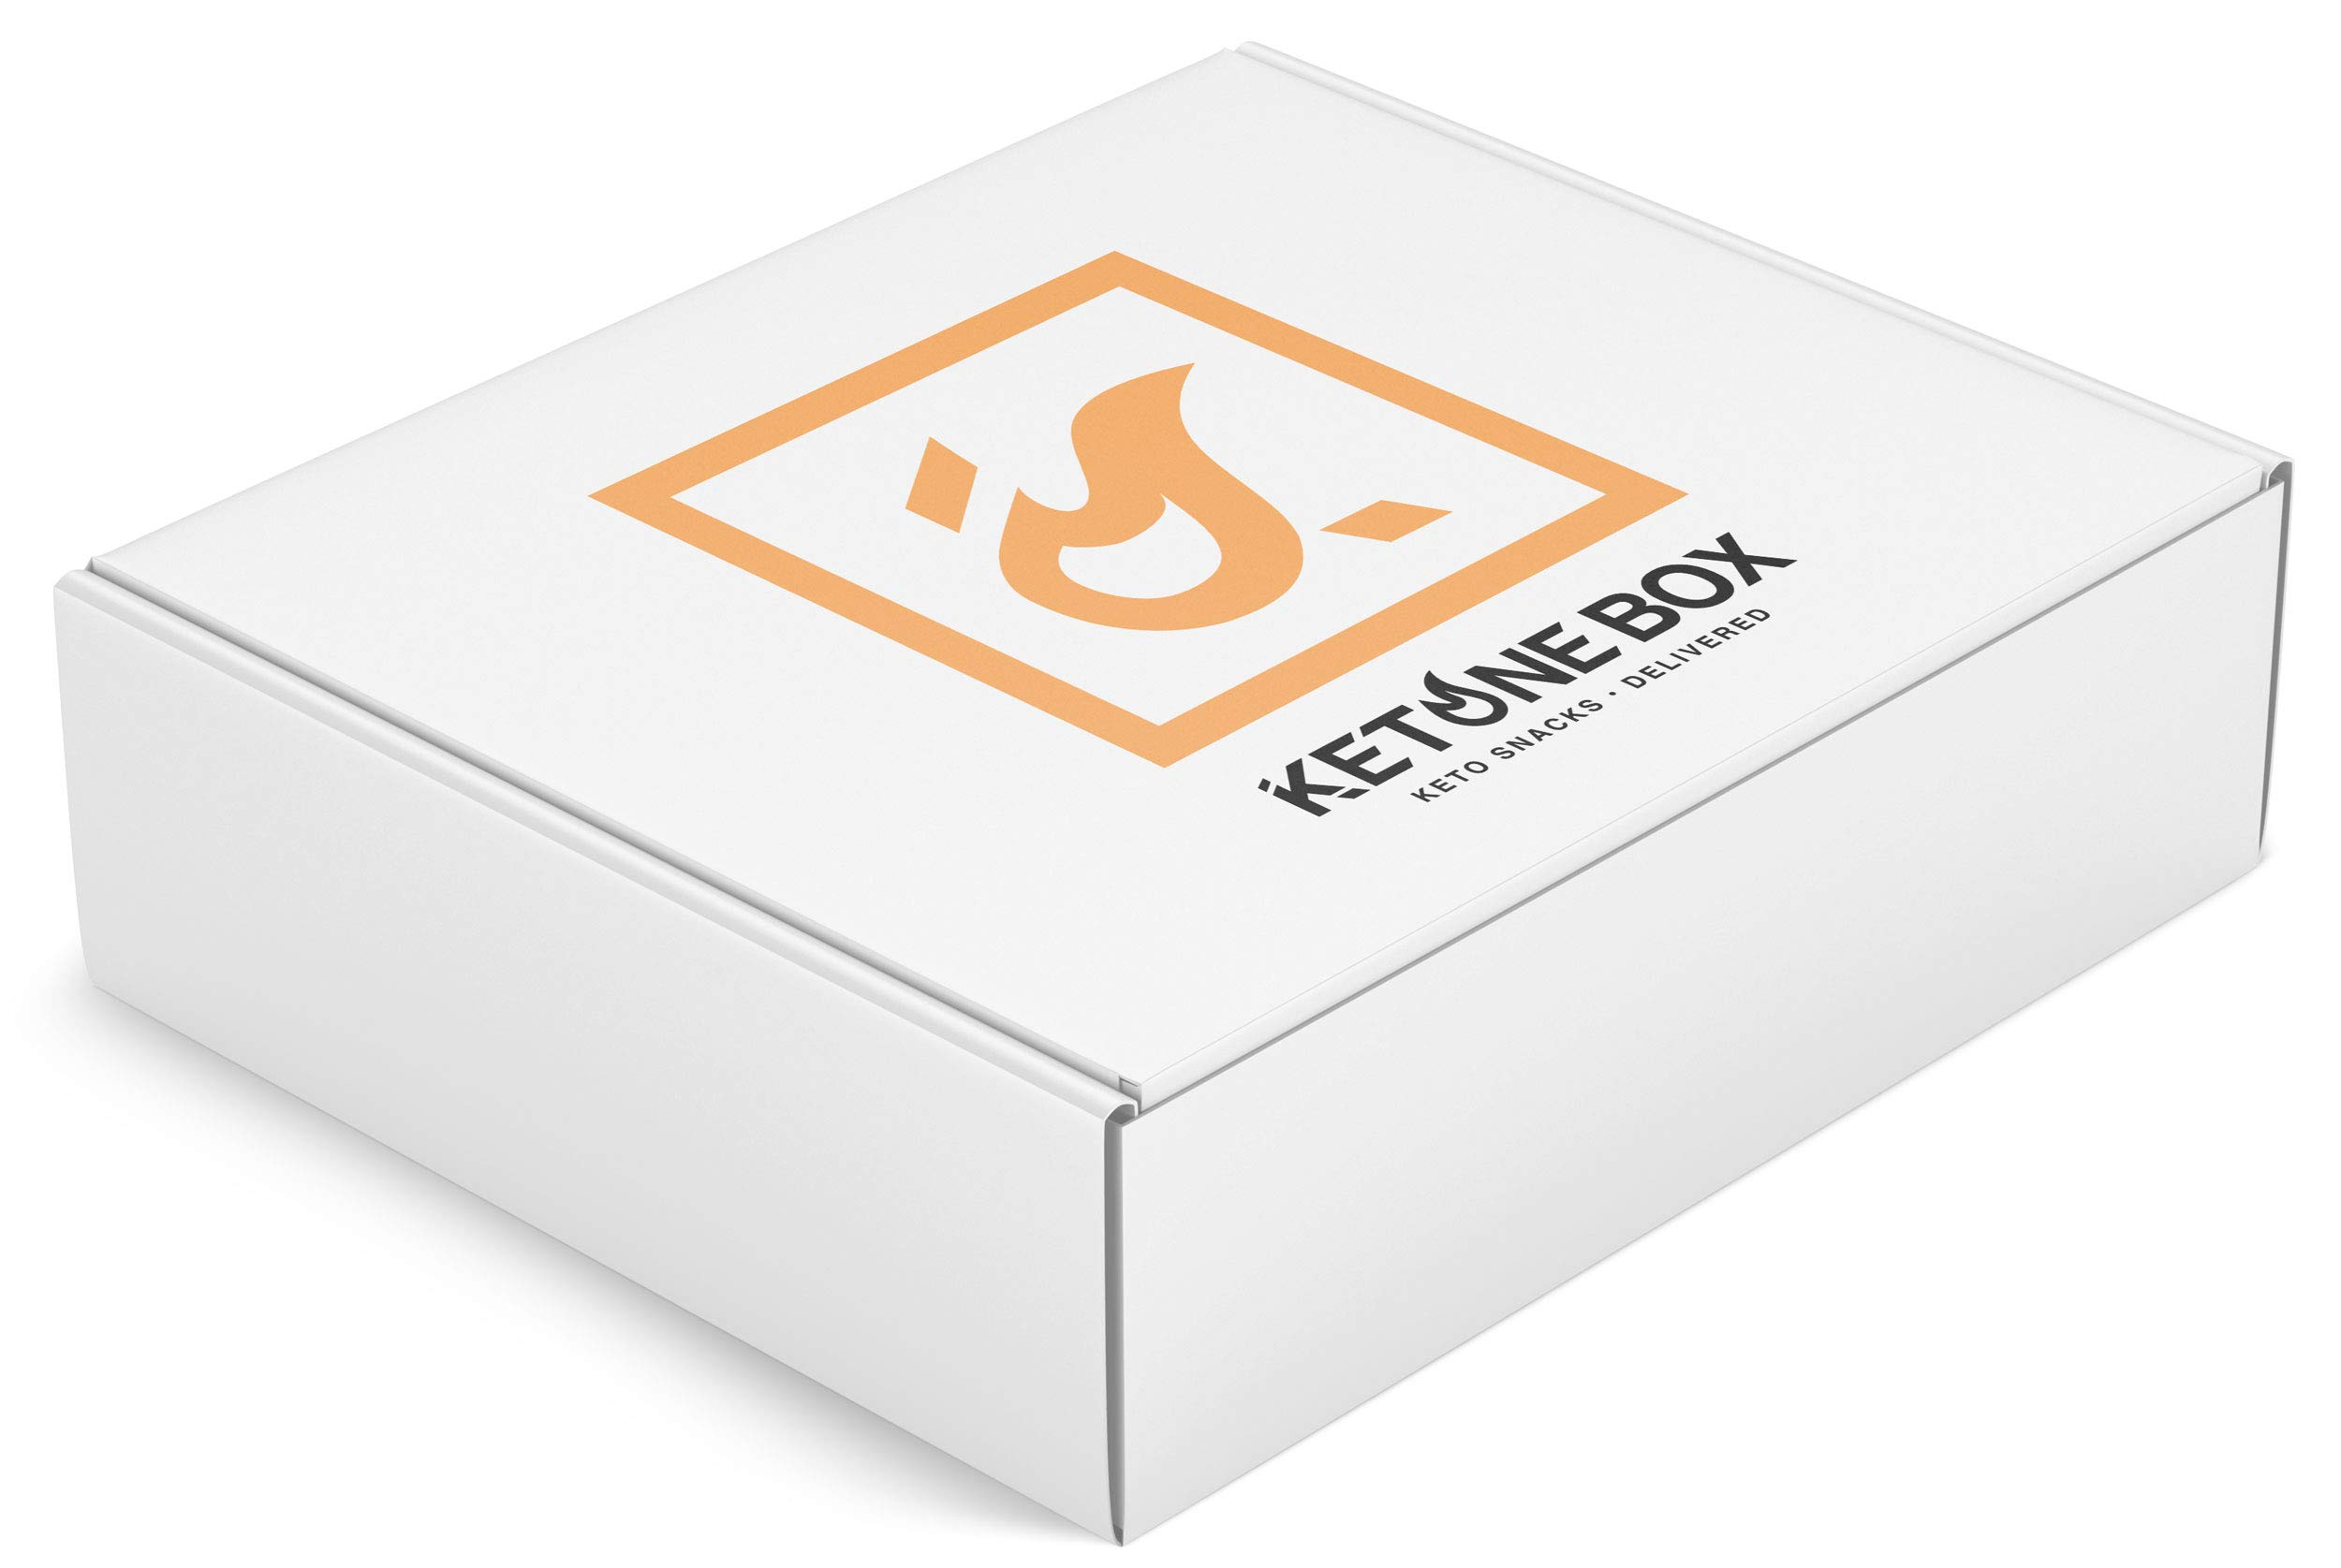 Keto Cheese Snacks Care Package Gift Box (15 Count) - Low Carb Snack - 1g Carbs or less -Ketogenic Friendly -Cello Whisps Cheese Crisps, Just The Cheese Bars, Moon Cheese, Bunker Hill -Variety Flavors by Ketone Box (Image #2)